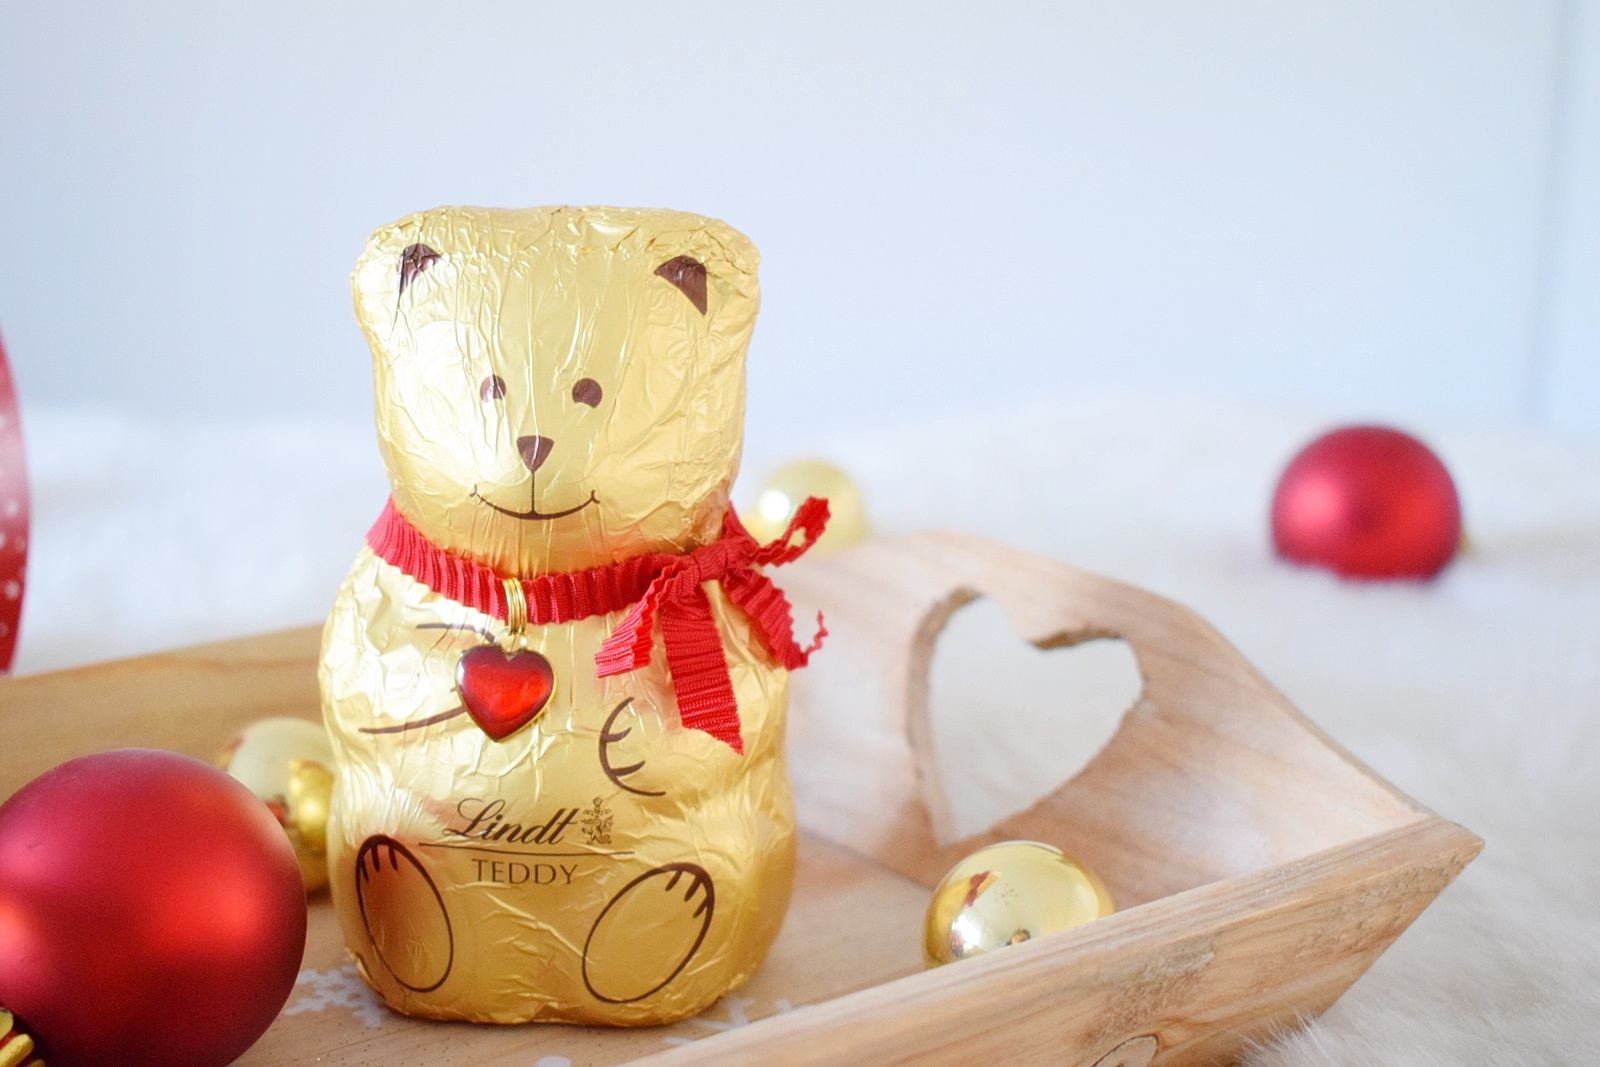 lindt-teddy